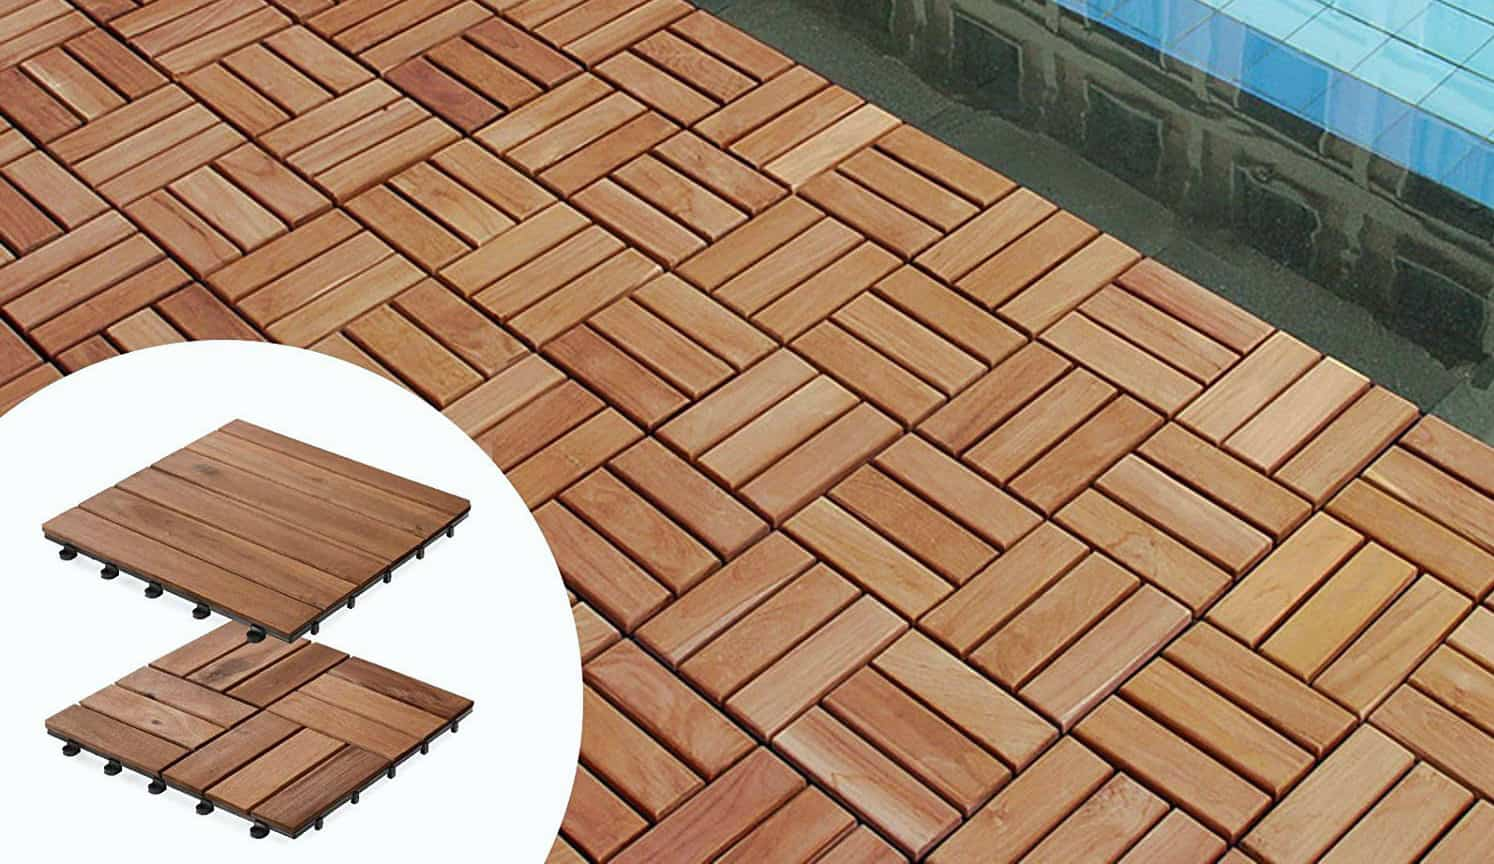 Natural Pavers as the second related product of Outdoor Patio Pavers